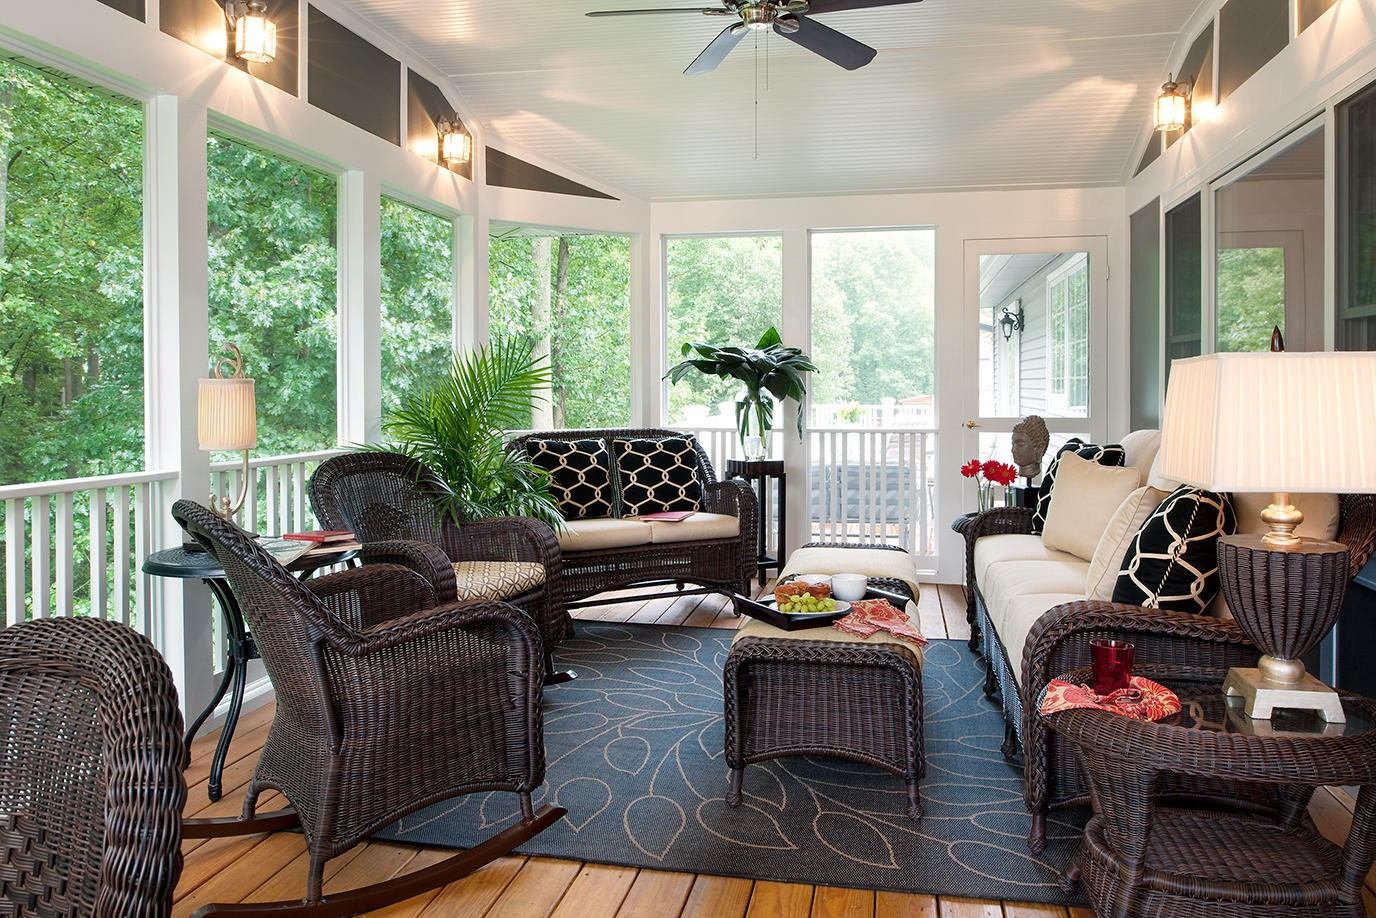 Best ideas about Porch Furniture Ideas . Save or Pin screened porch 8 Now.